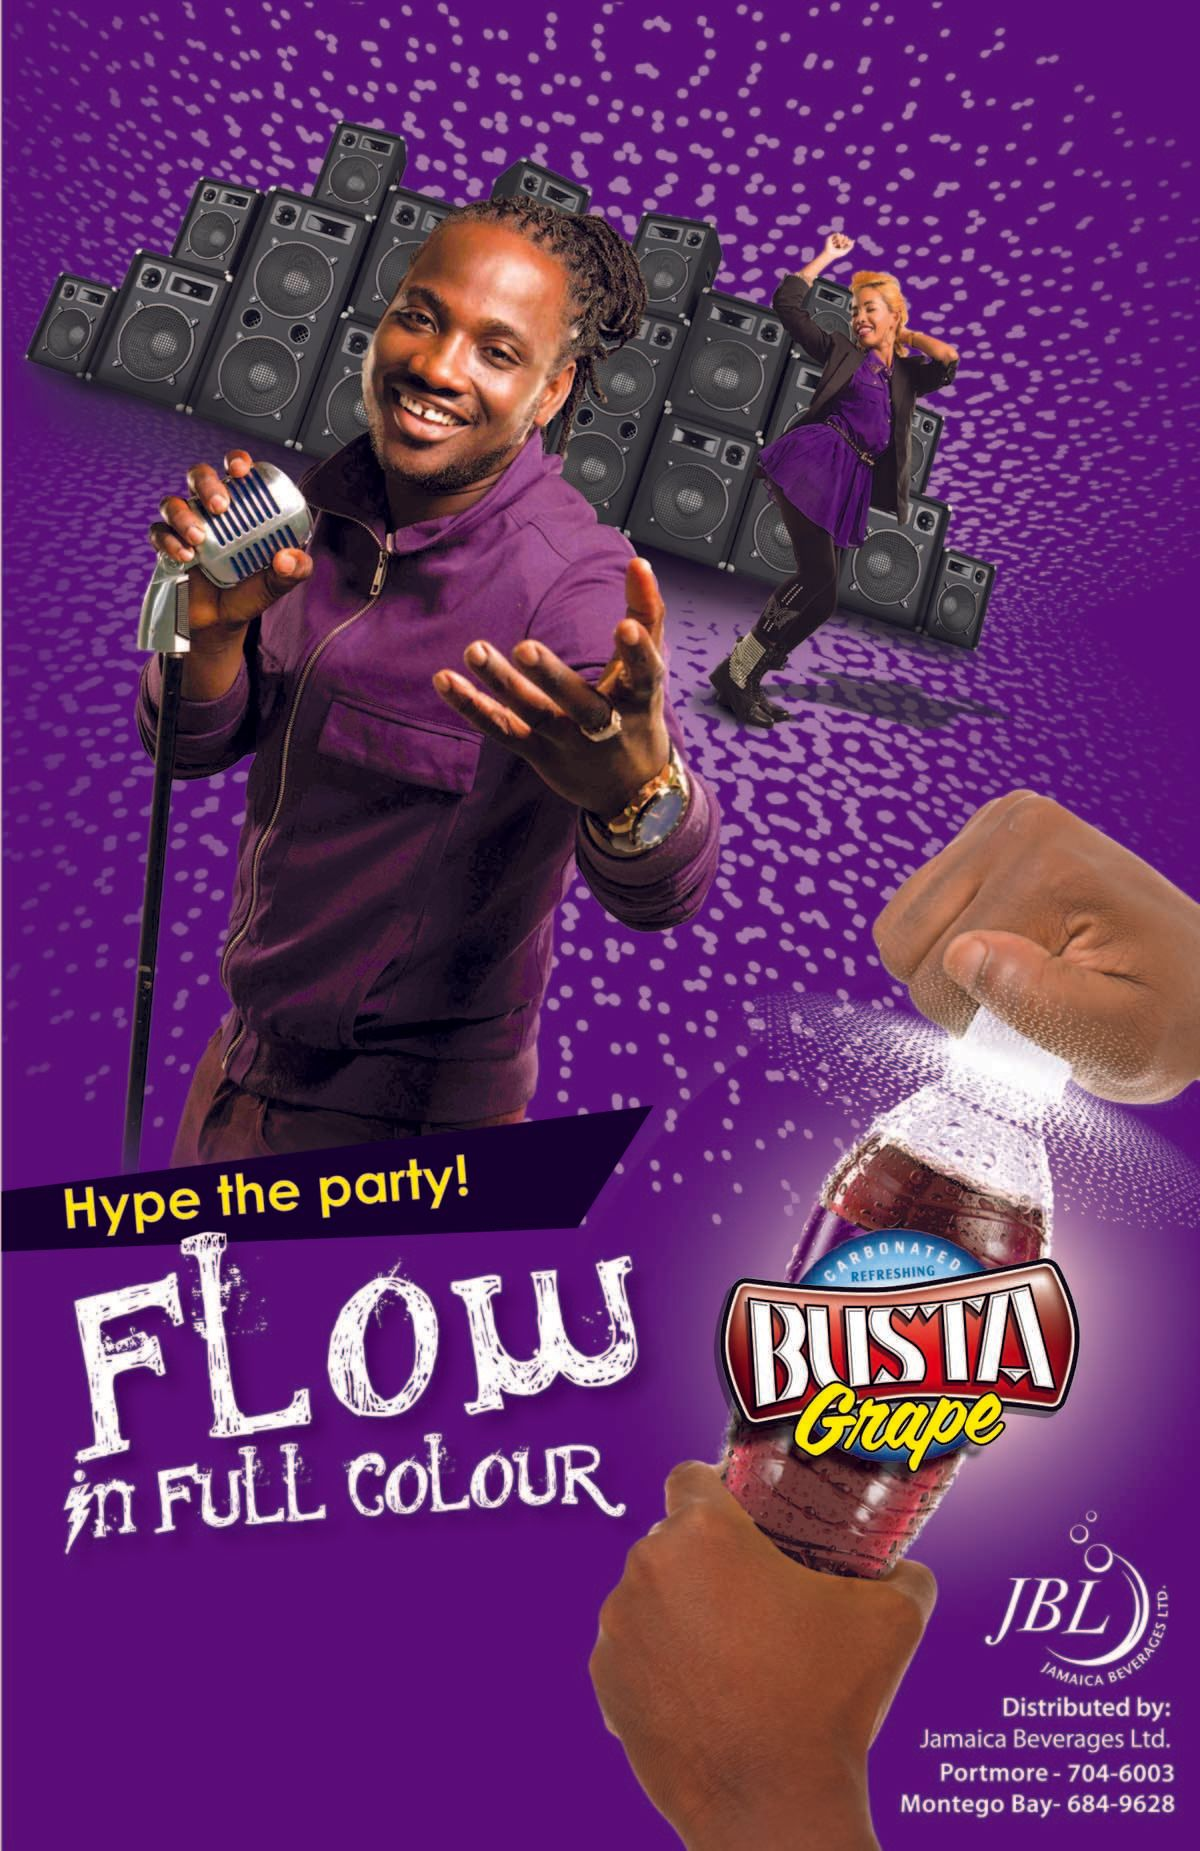 1busta_live_in_full_colour_poster_grape_11in_x_17in_jamaica